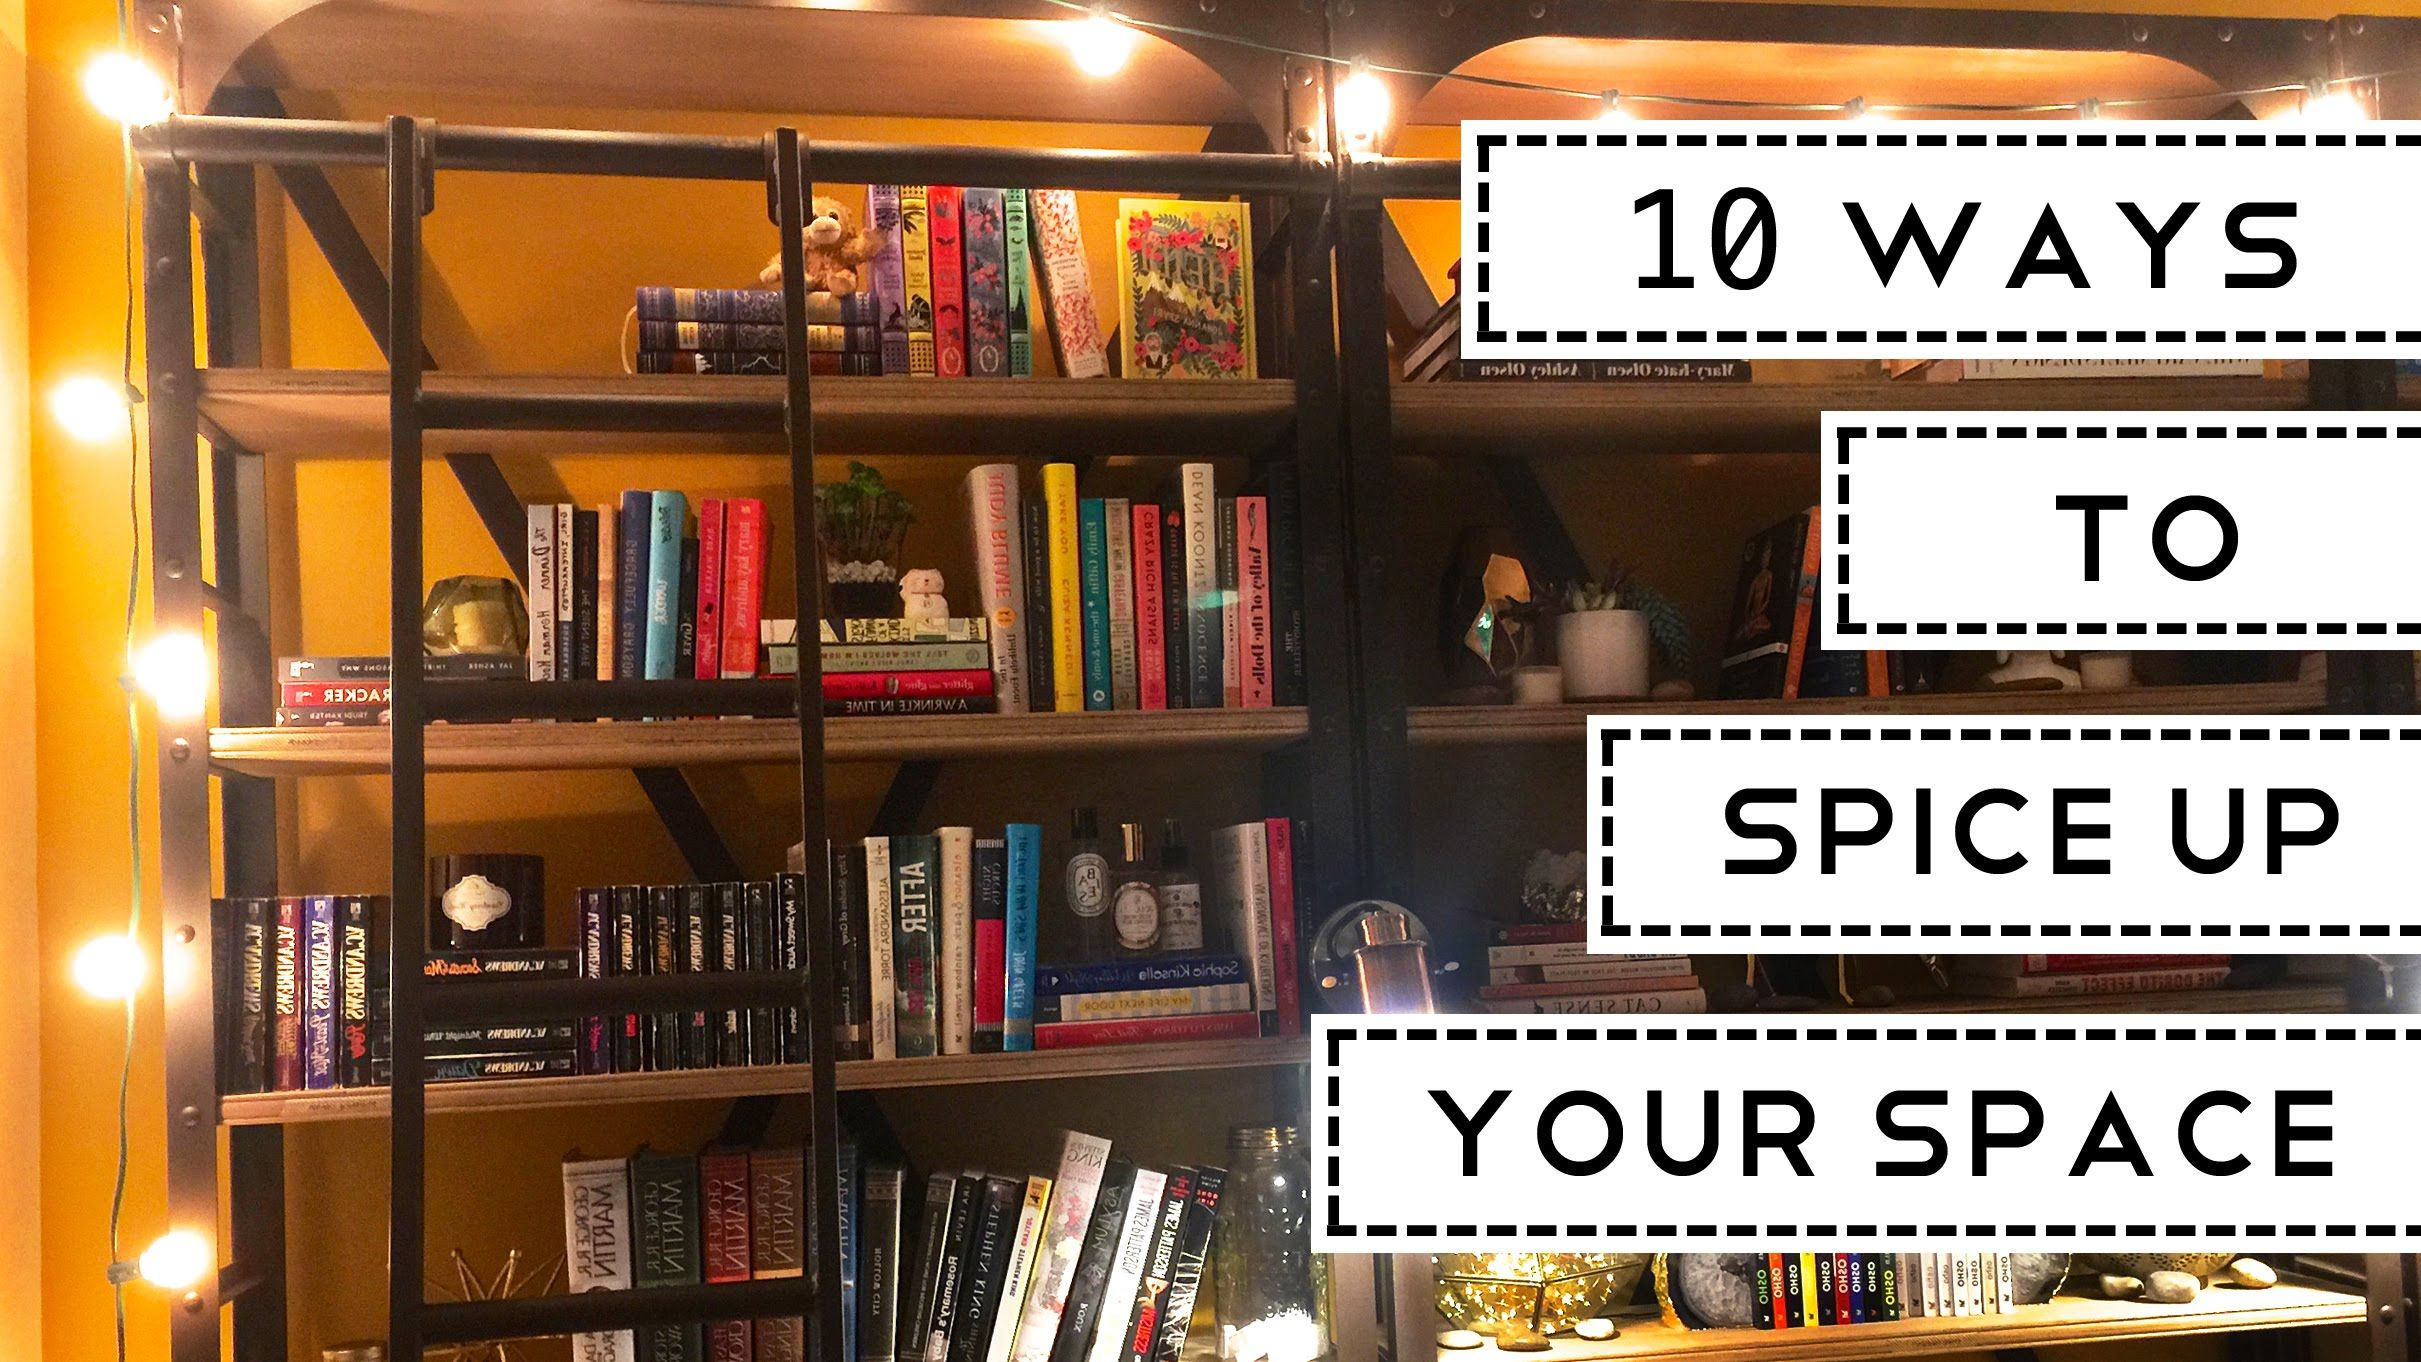 10 Ways To Spice Up Your Space [DIY Room Decor]